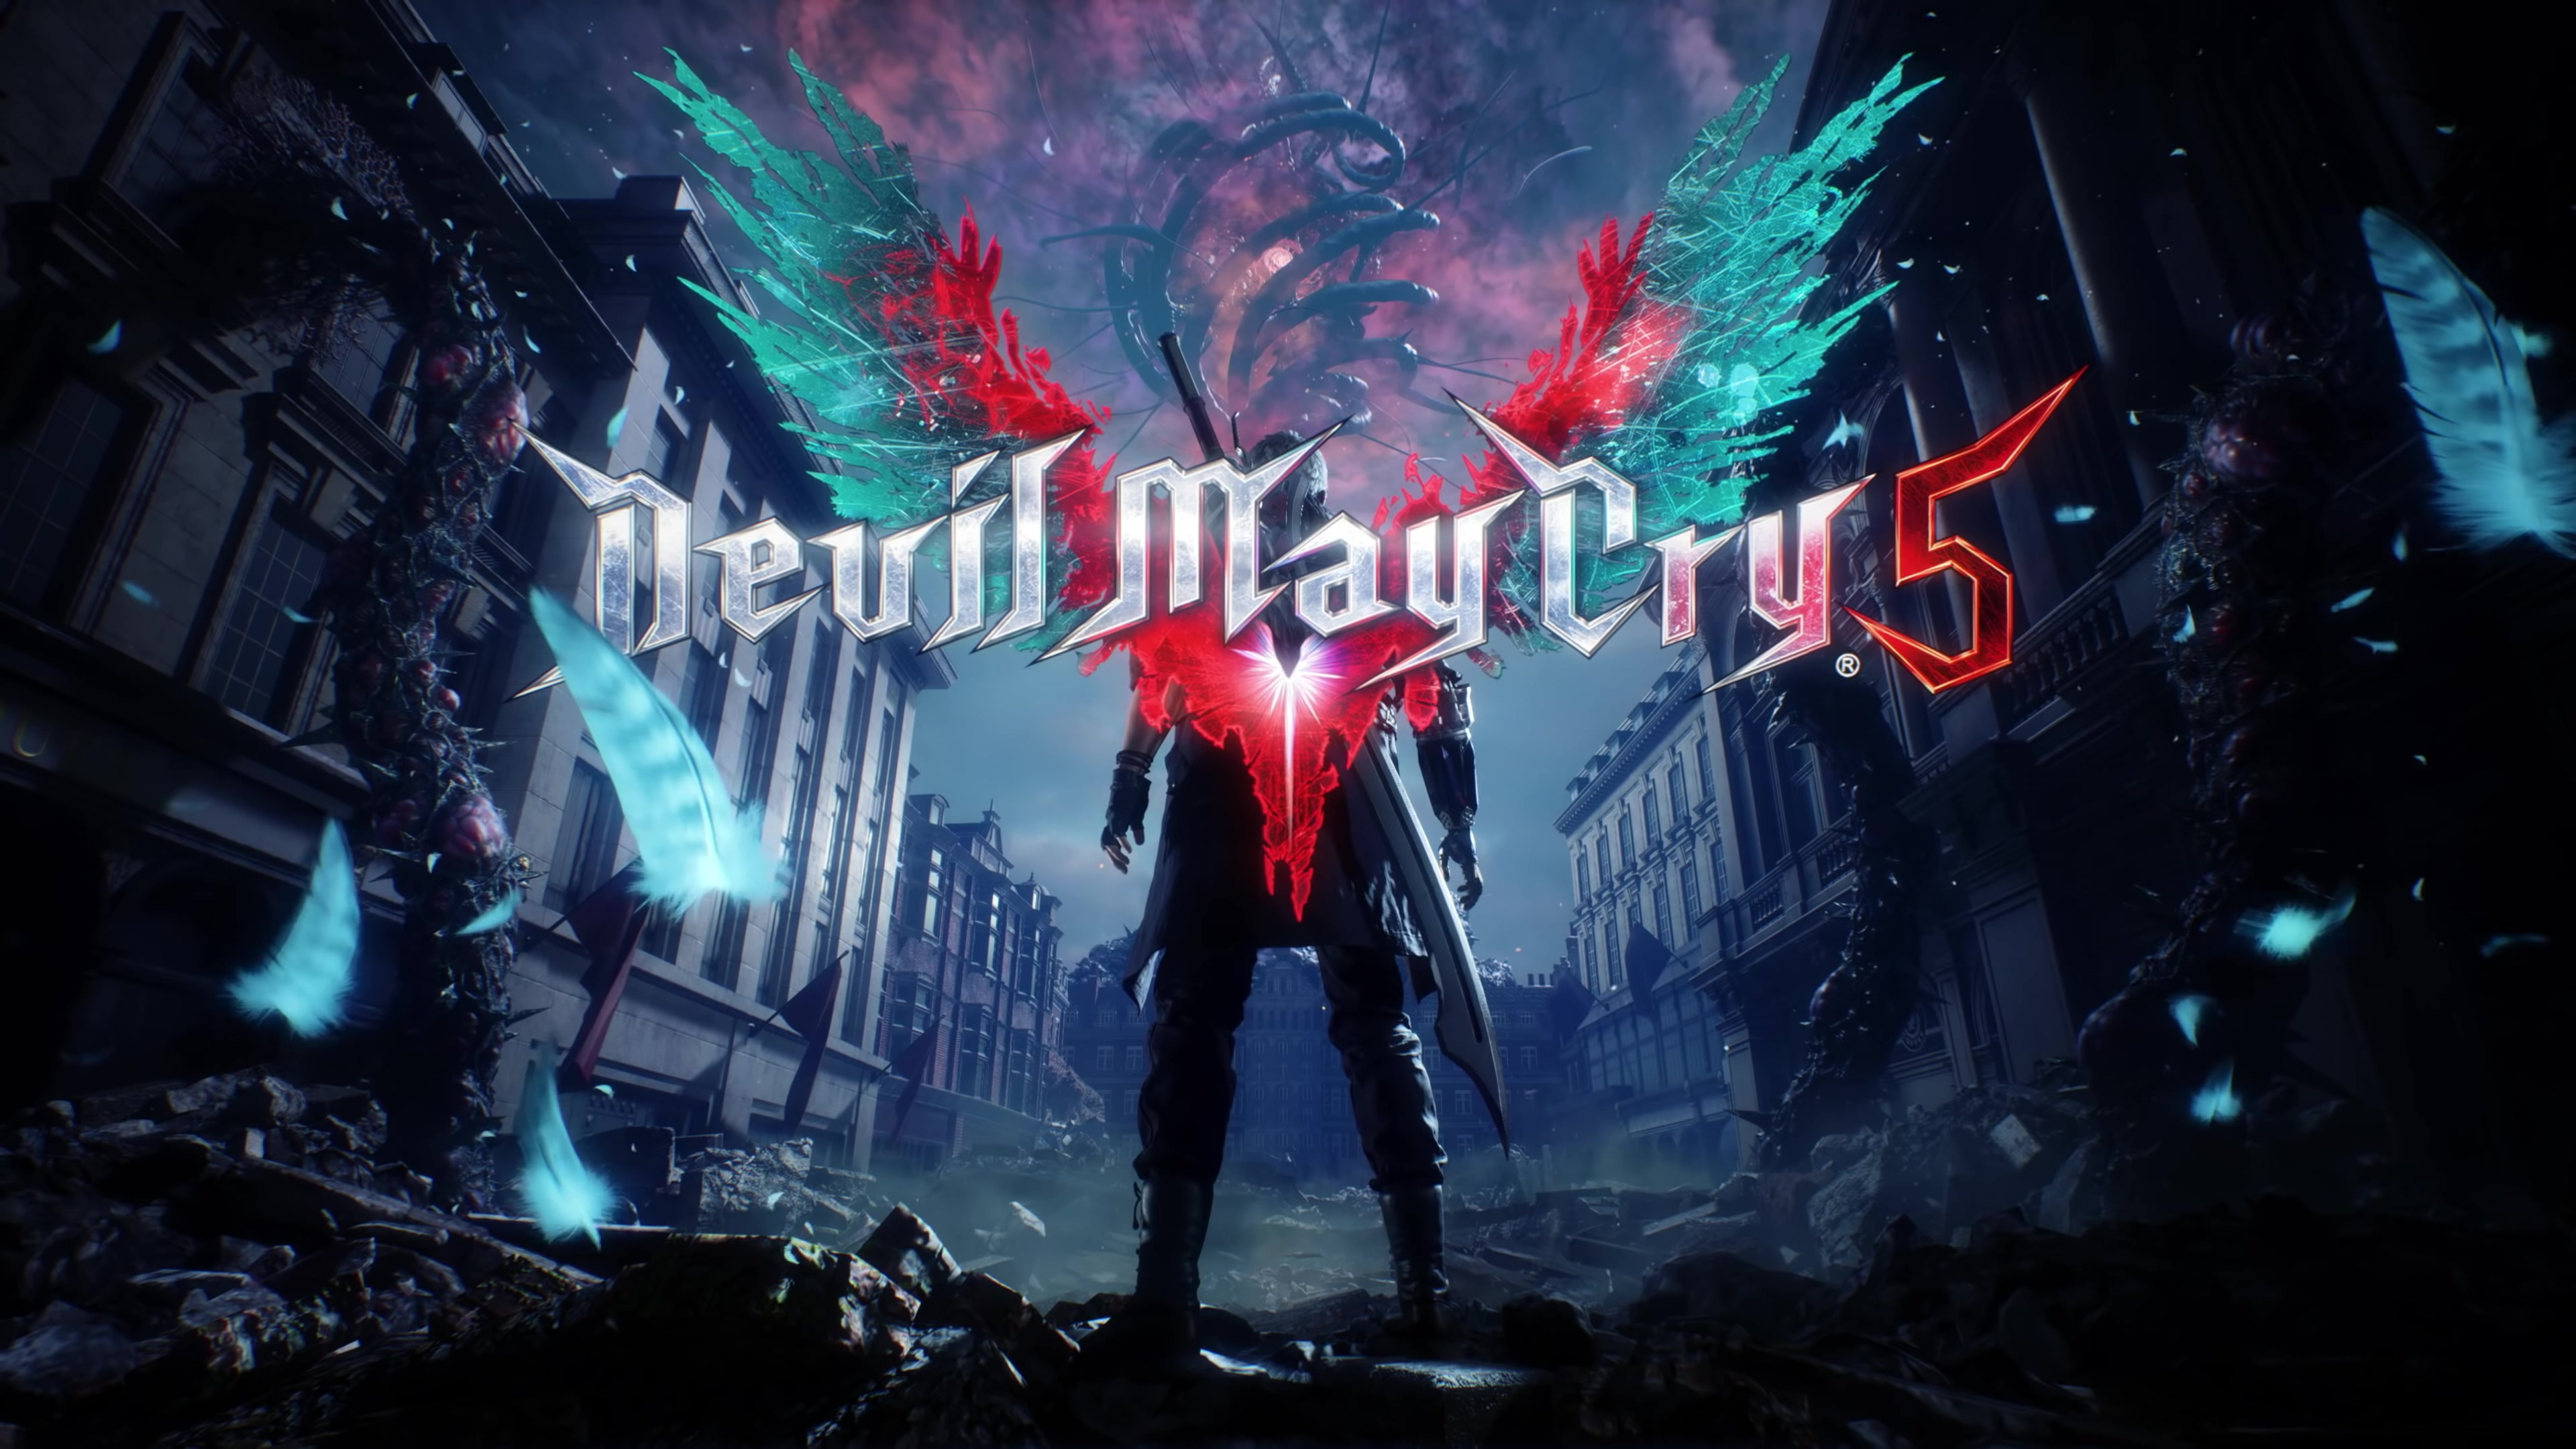 Devil May Cry 5 145.jpg - Devil May Cry 5